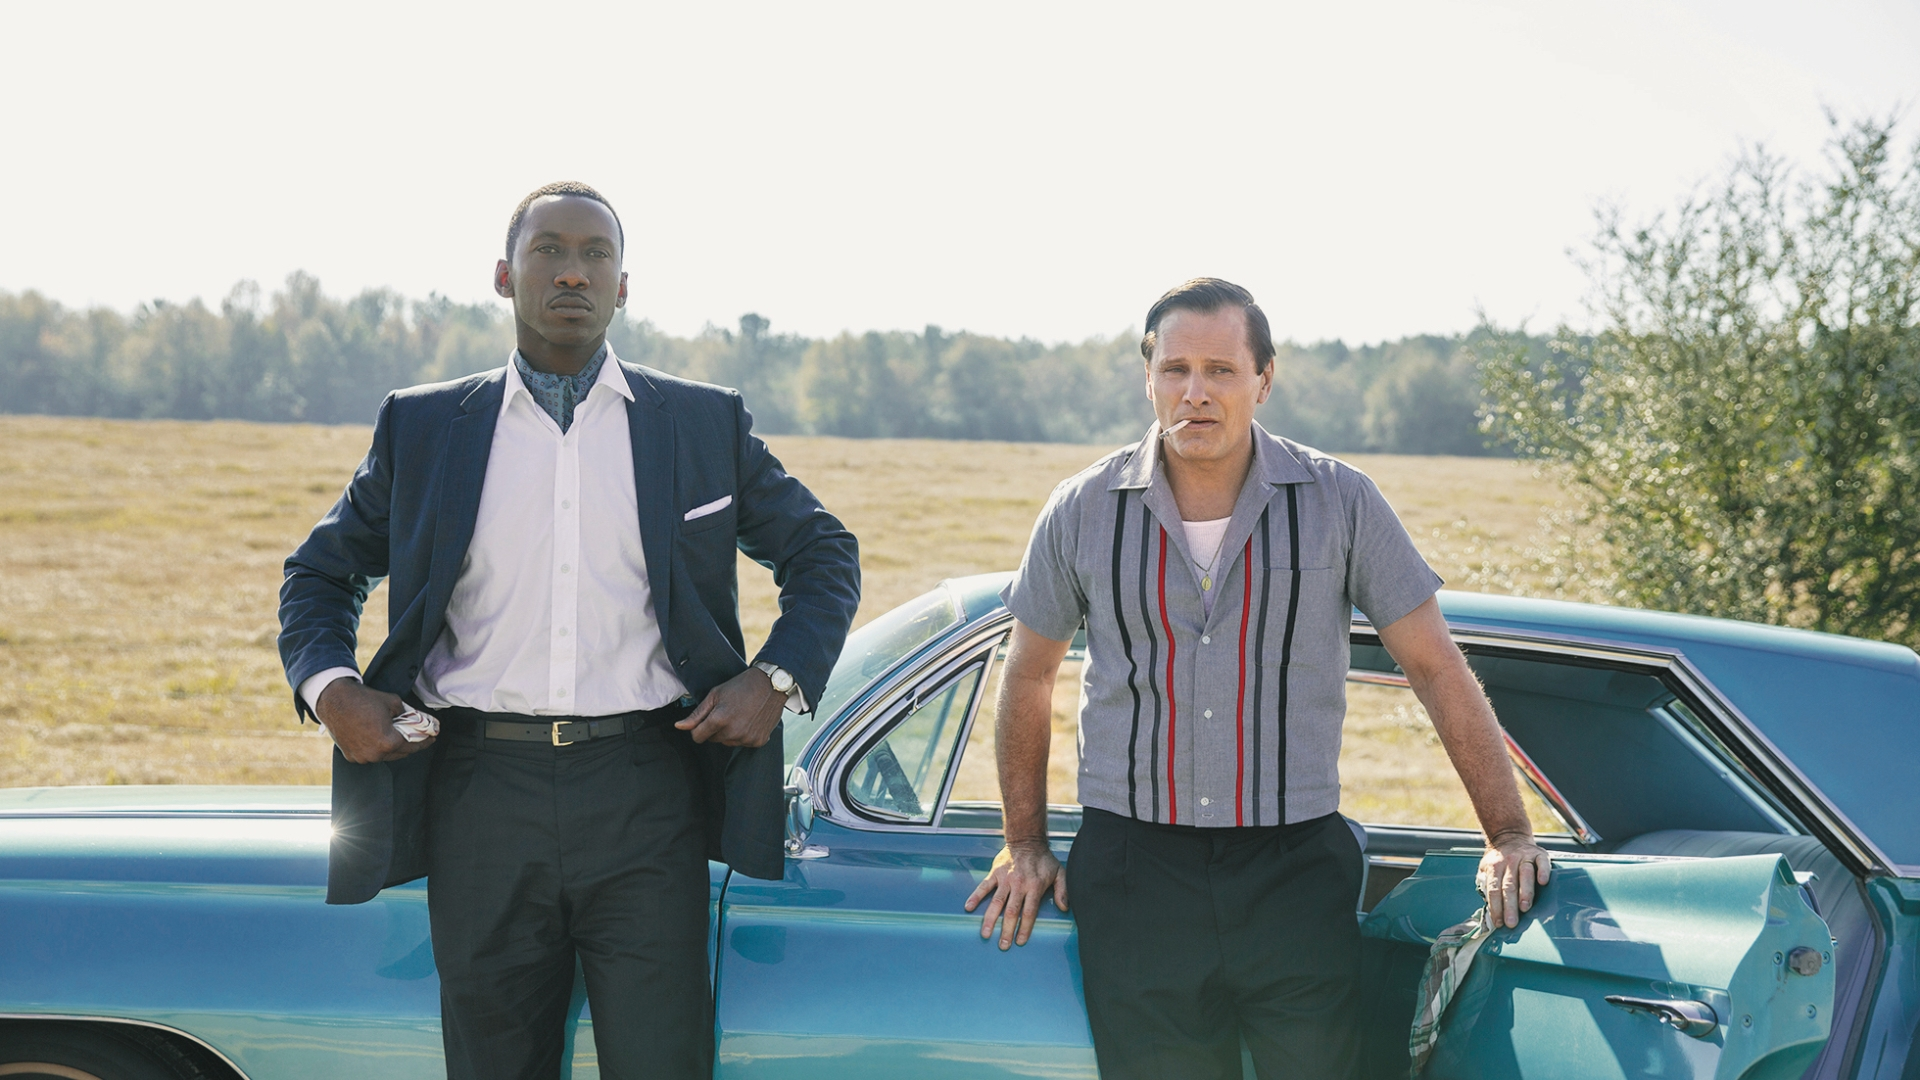 How 'Green Book' became this year's polarizing awards contender